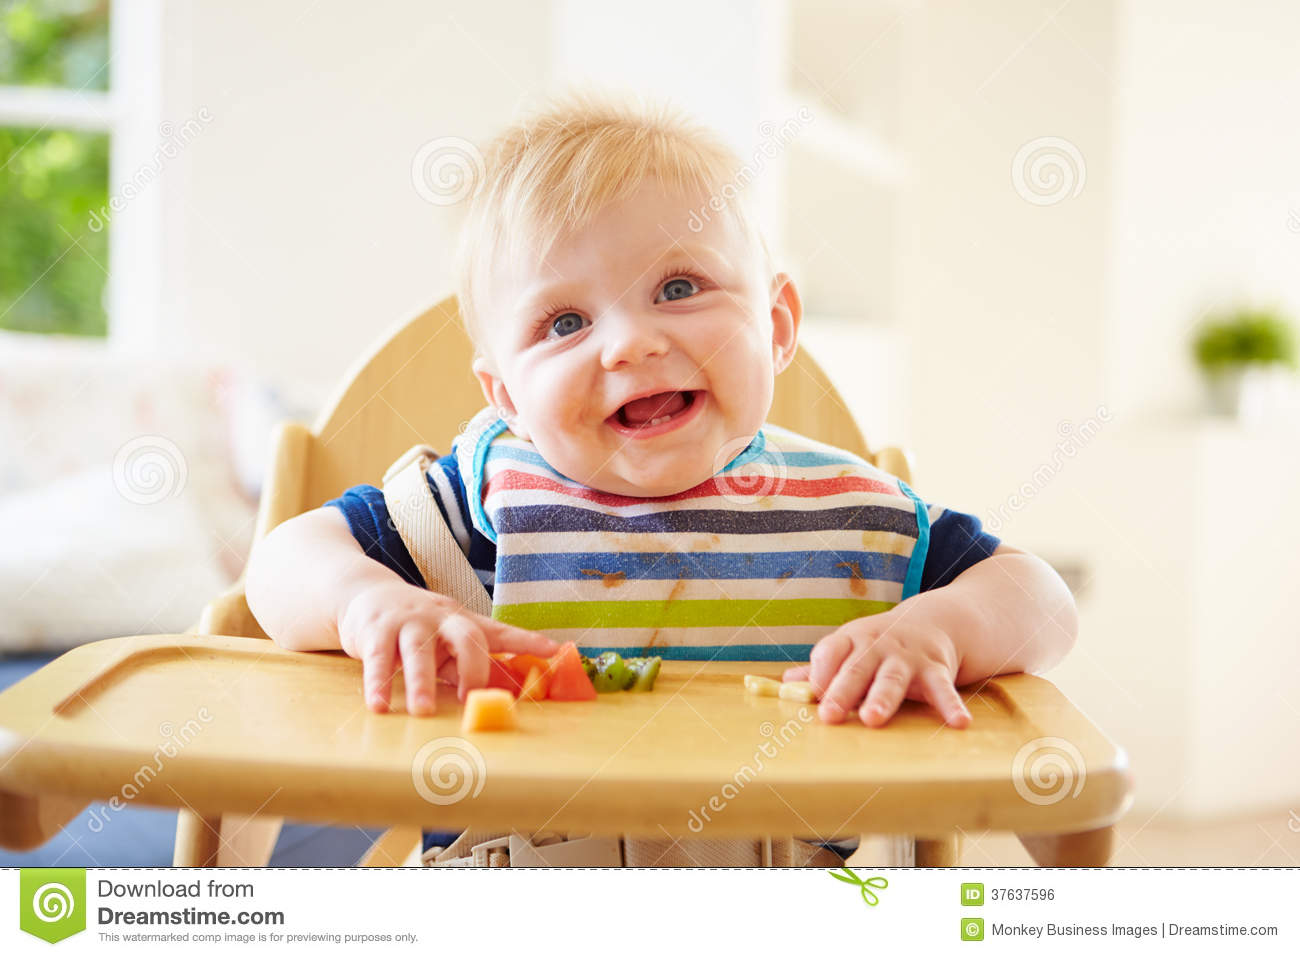 Baby Boy Eating Fruit In High Chair Royalty Free Stock